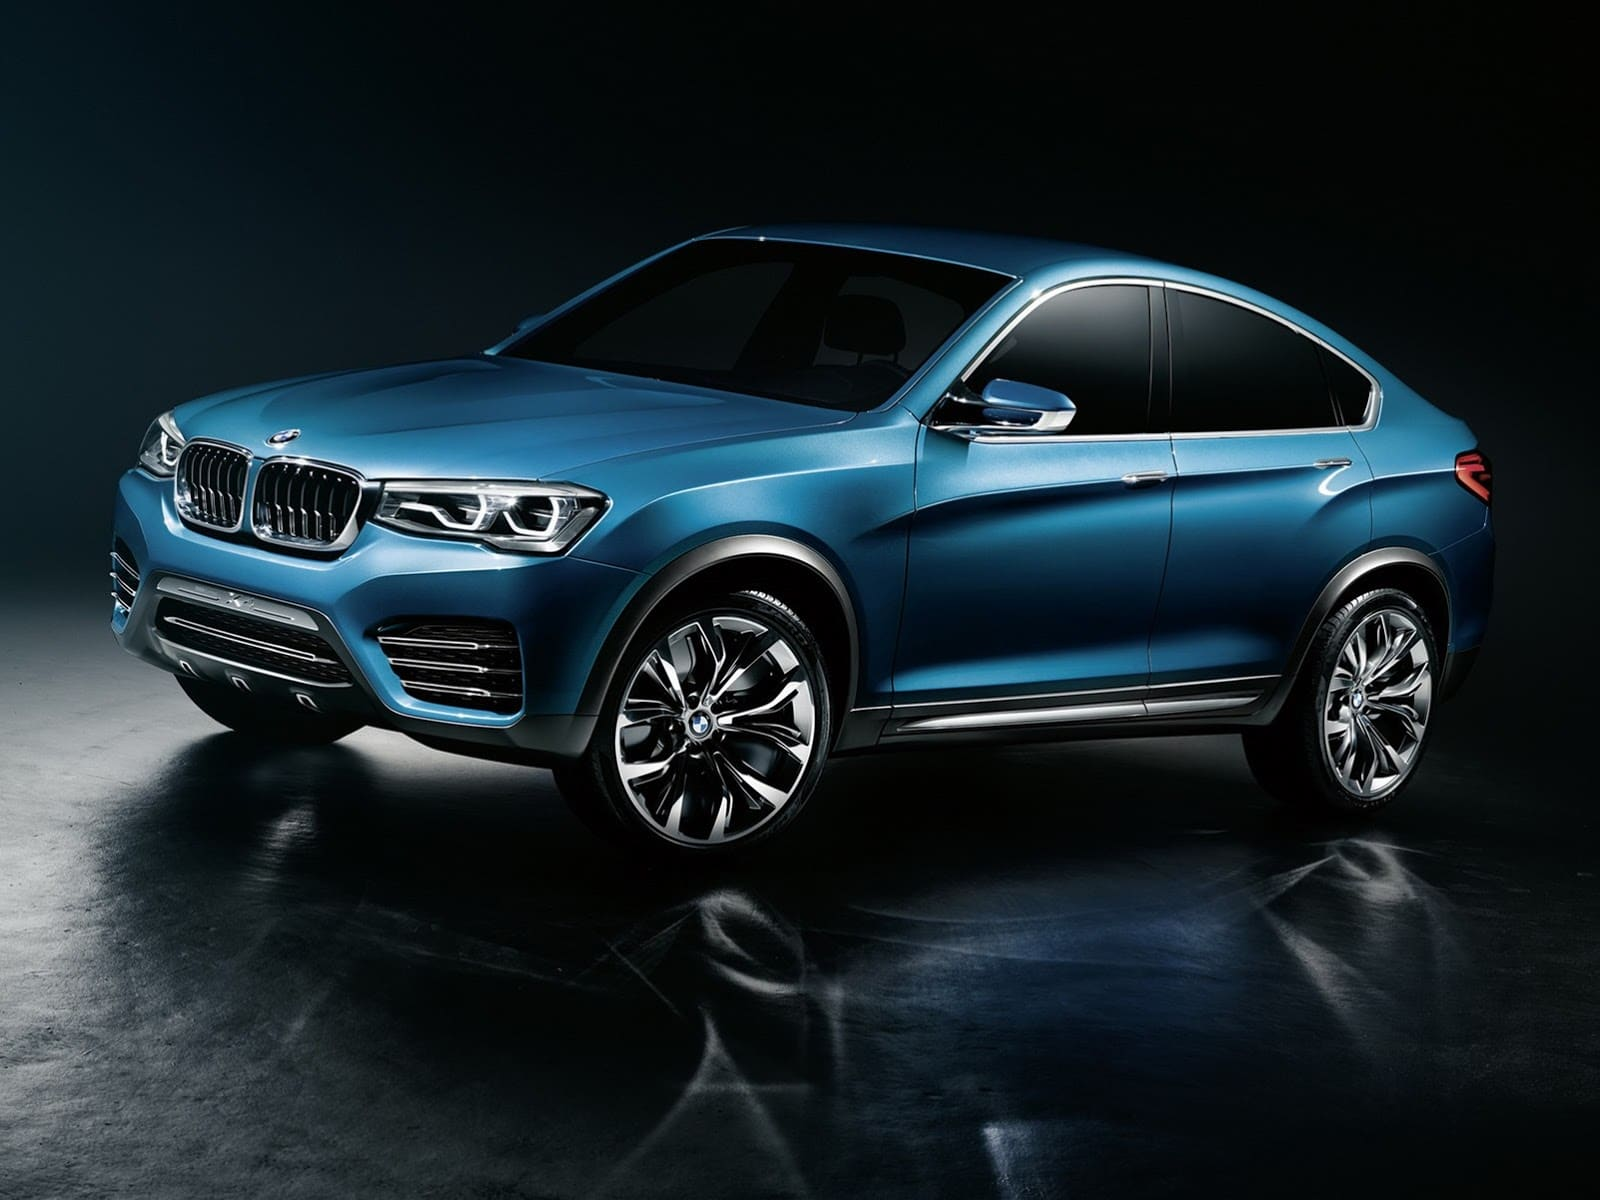 bmw x4 concept un nouveau suv entre le x3 et le x6. Black Bedroom Furniture Sets. Home Design Ideas